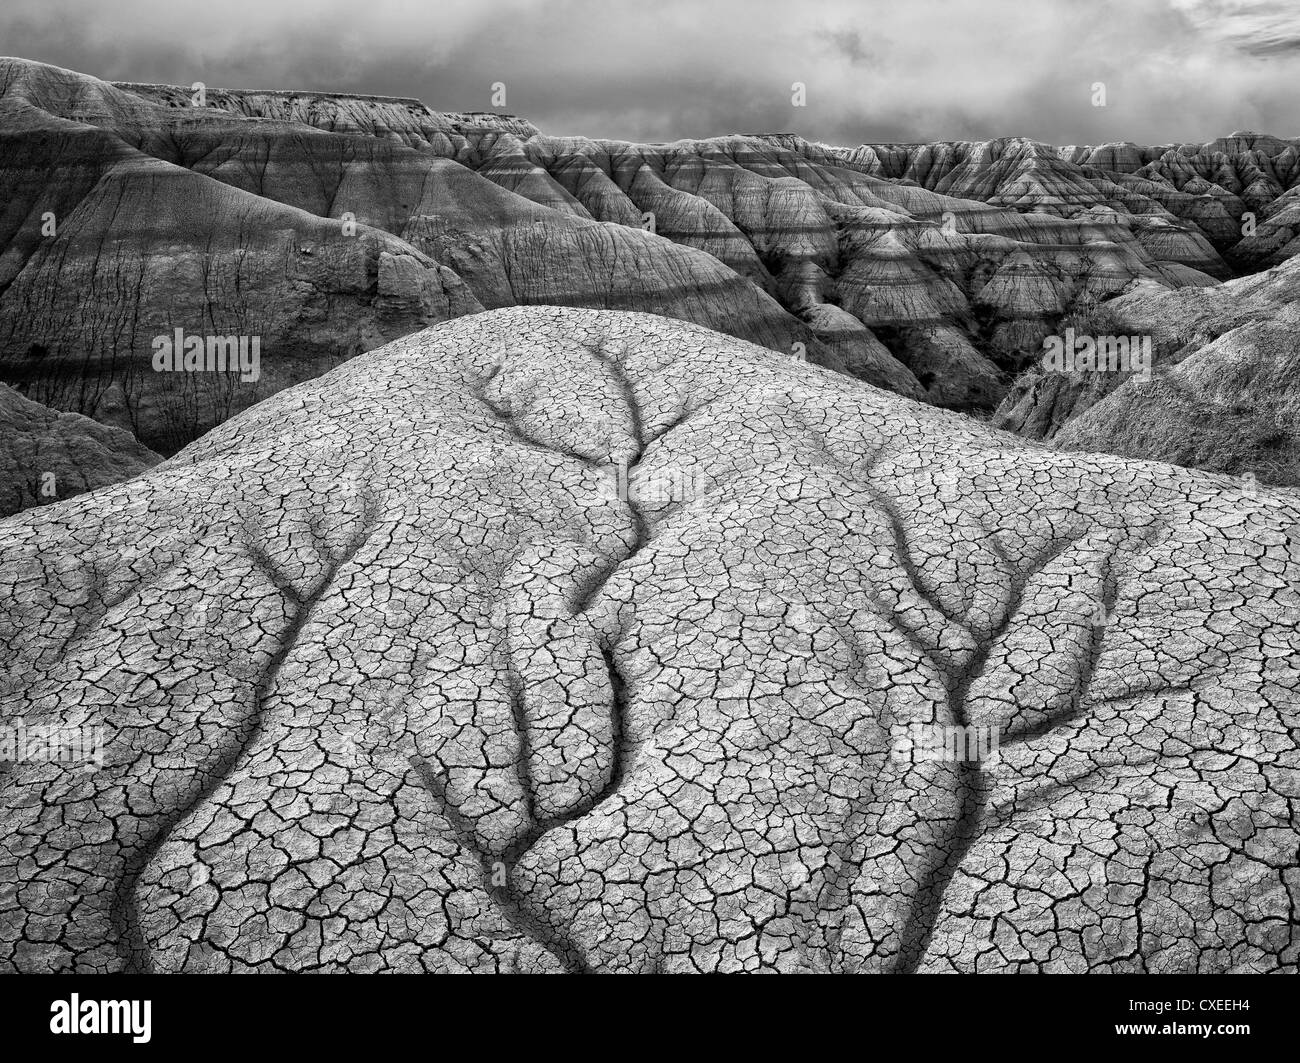 Erodiert und gebrochene Gestein und Schlamm Formationen. Badlands Nationalpark. South Dakota Formationen. Stockfoto